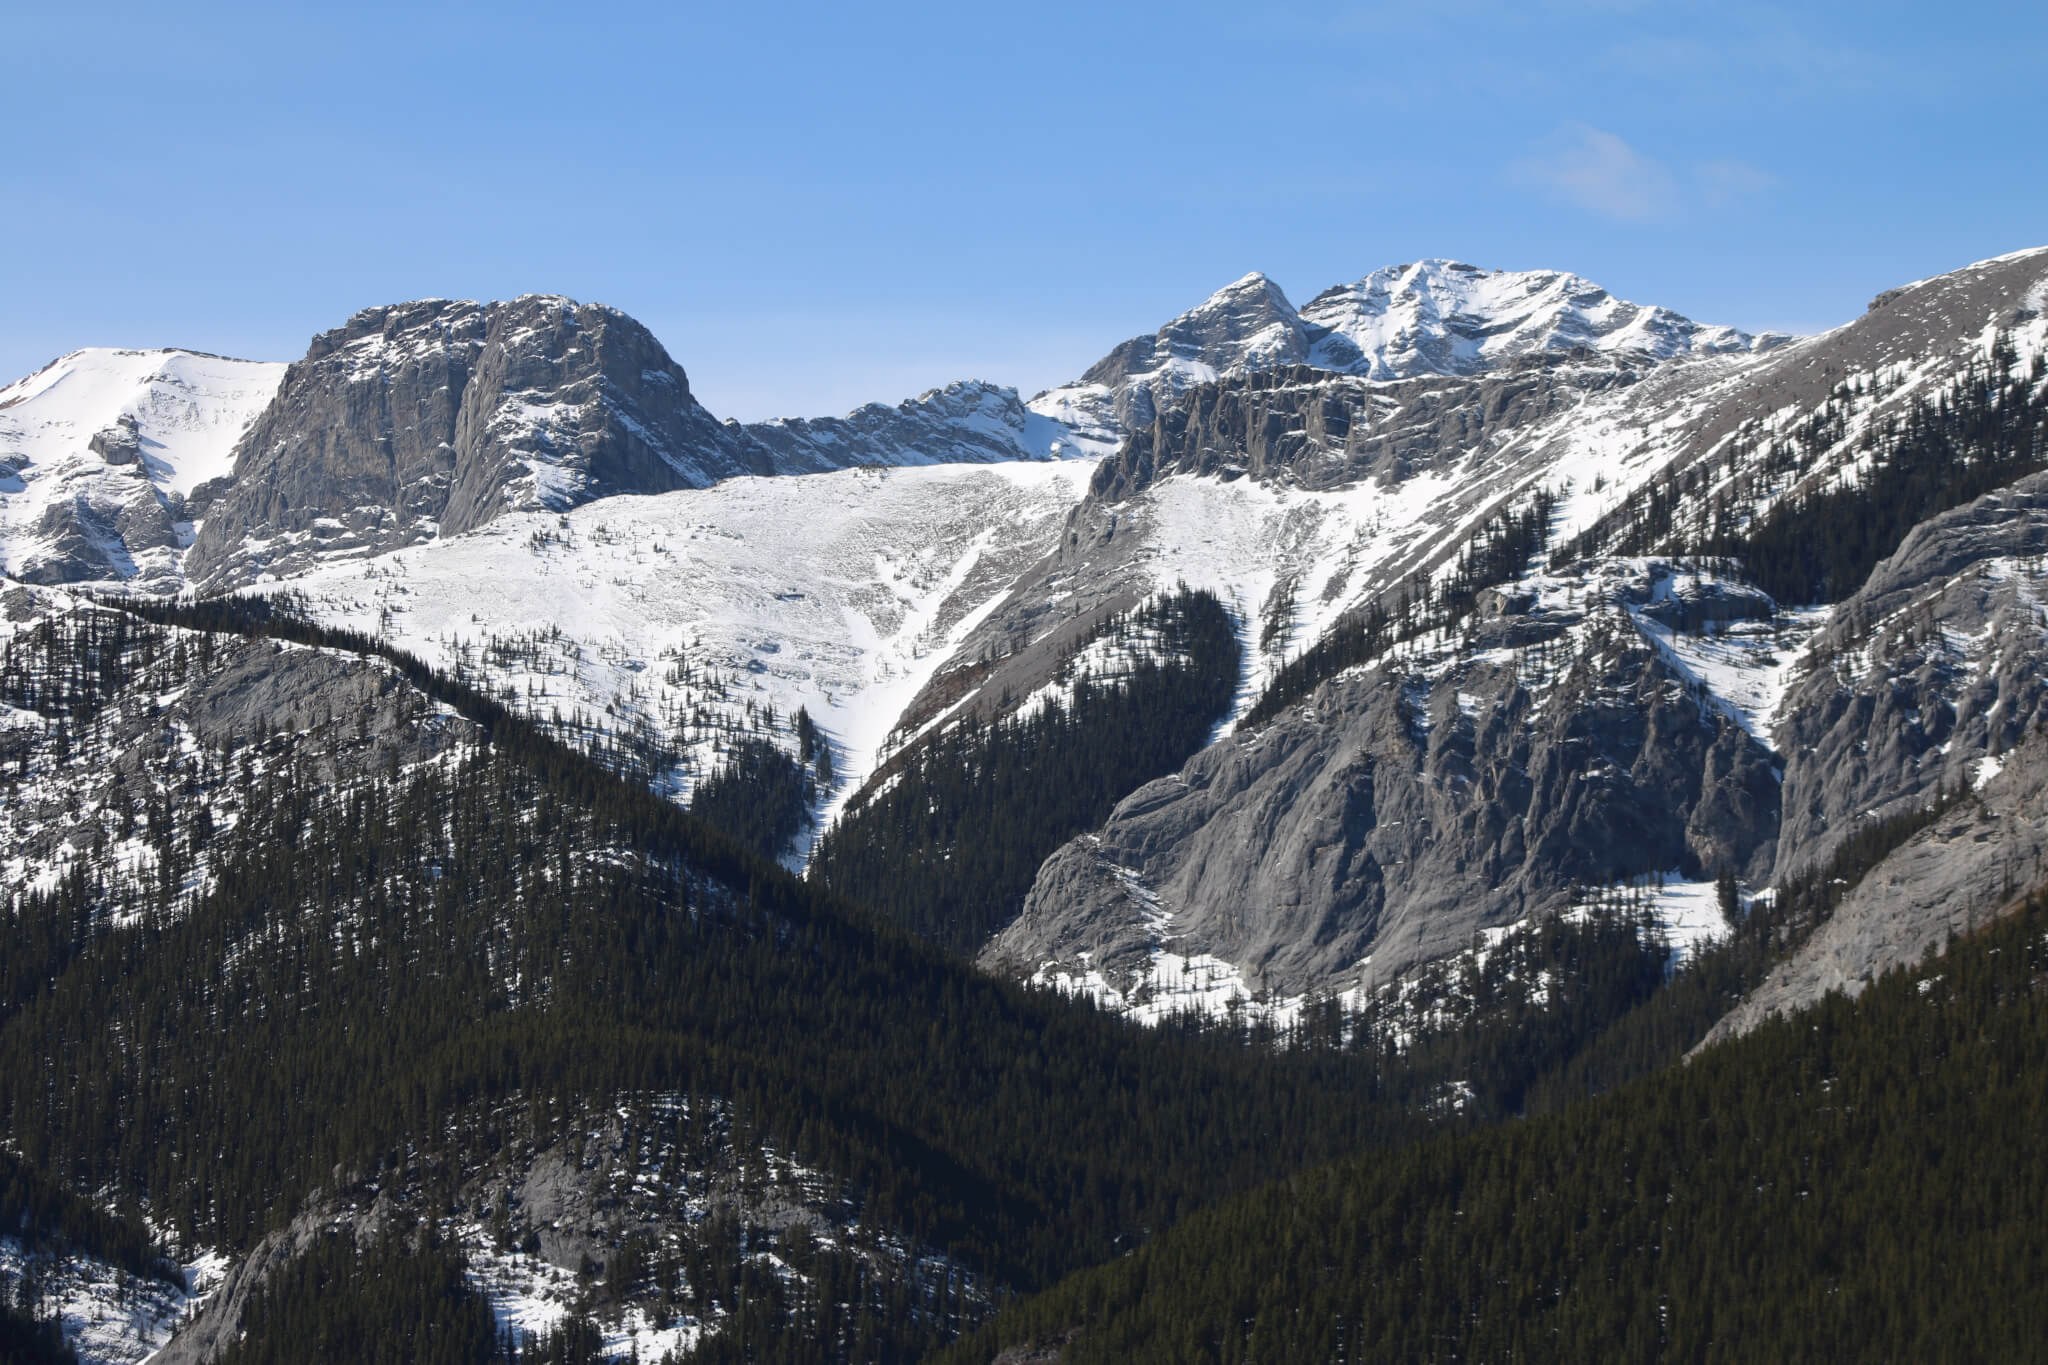 Kananaskis Country, Canada; the primary filming location. By: Dave Bloggs, CC BY 2.0